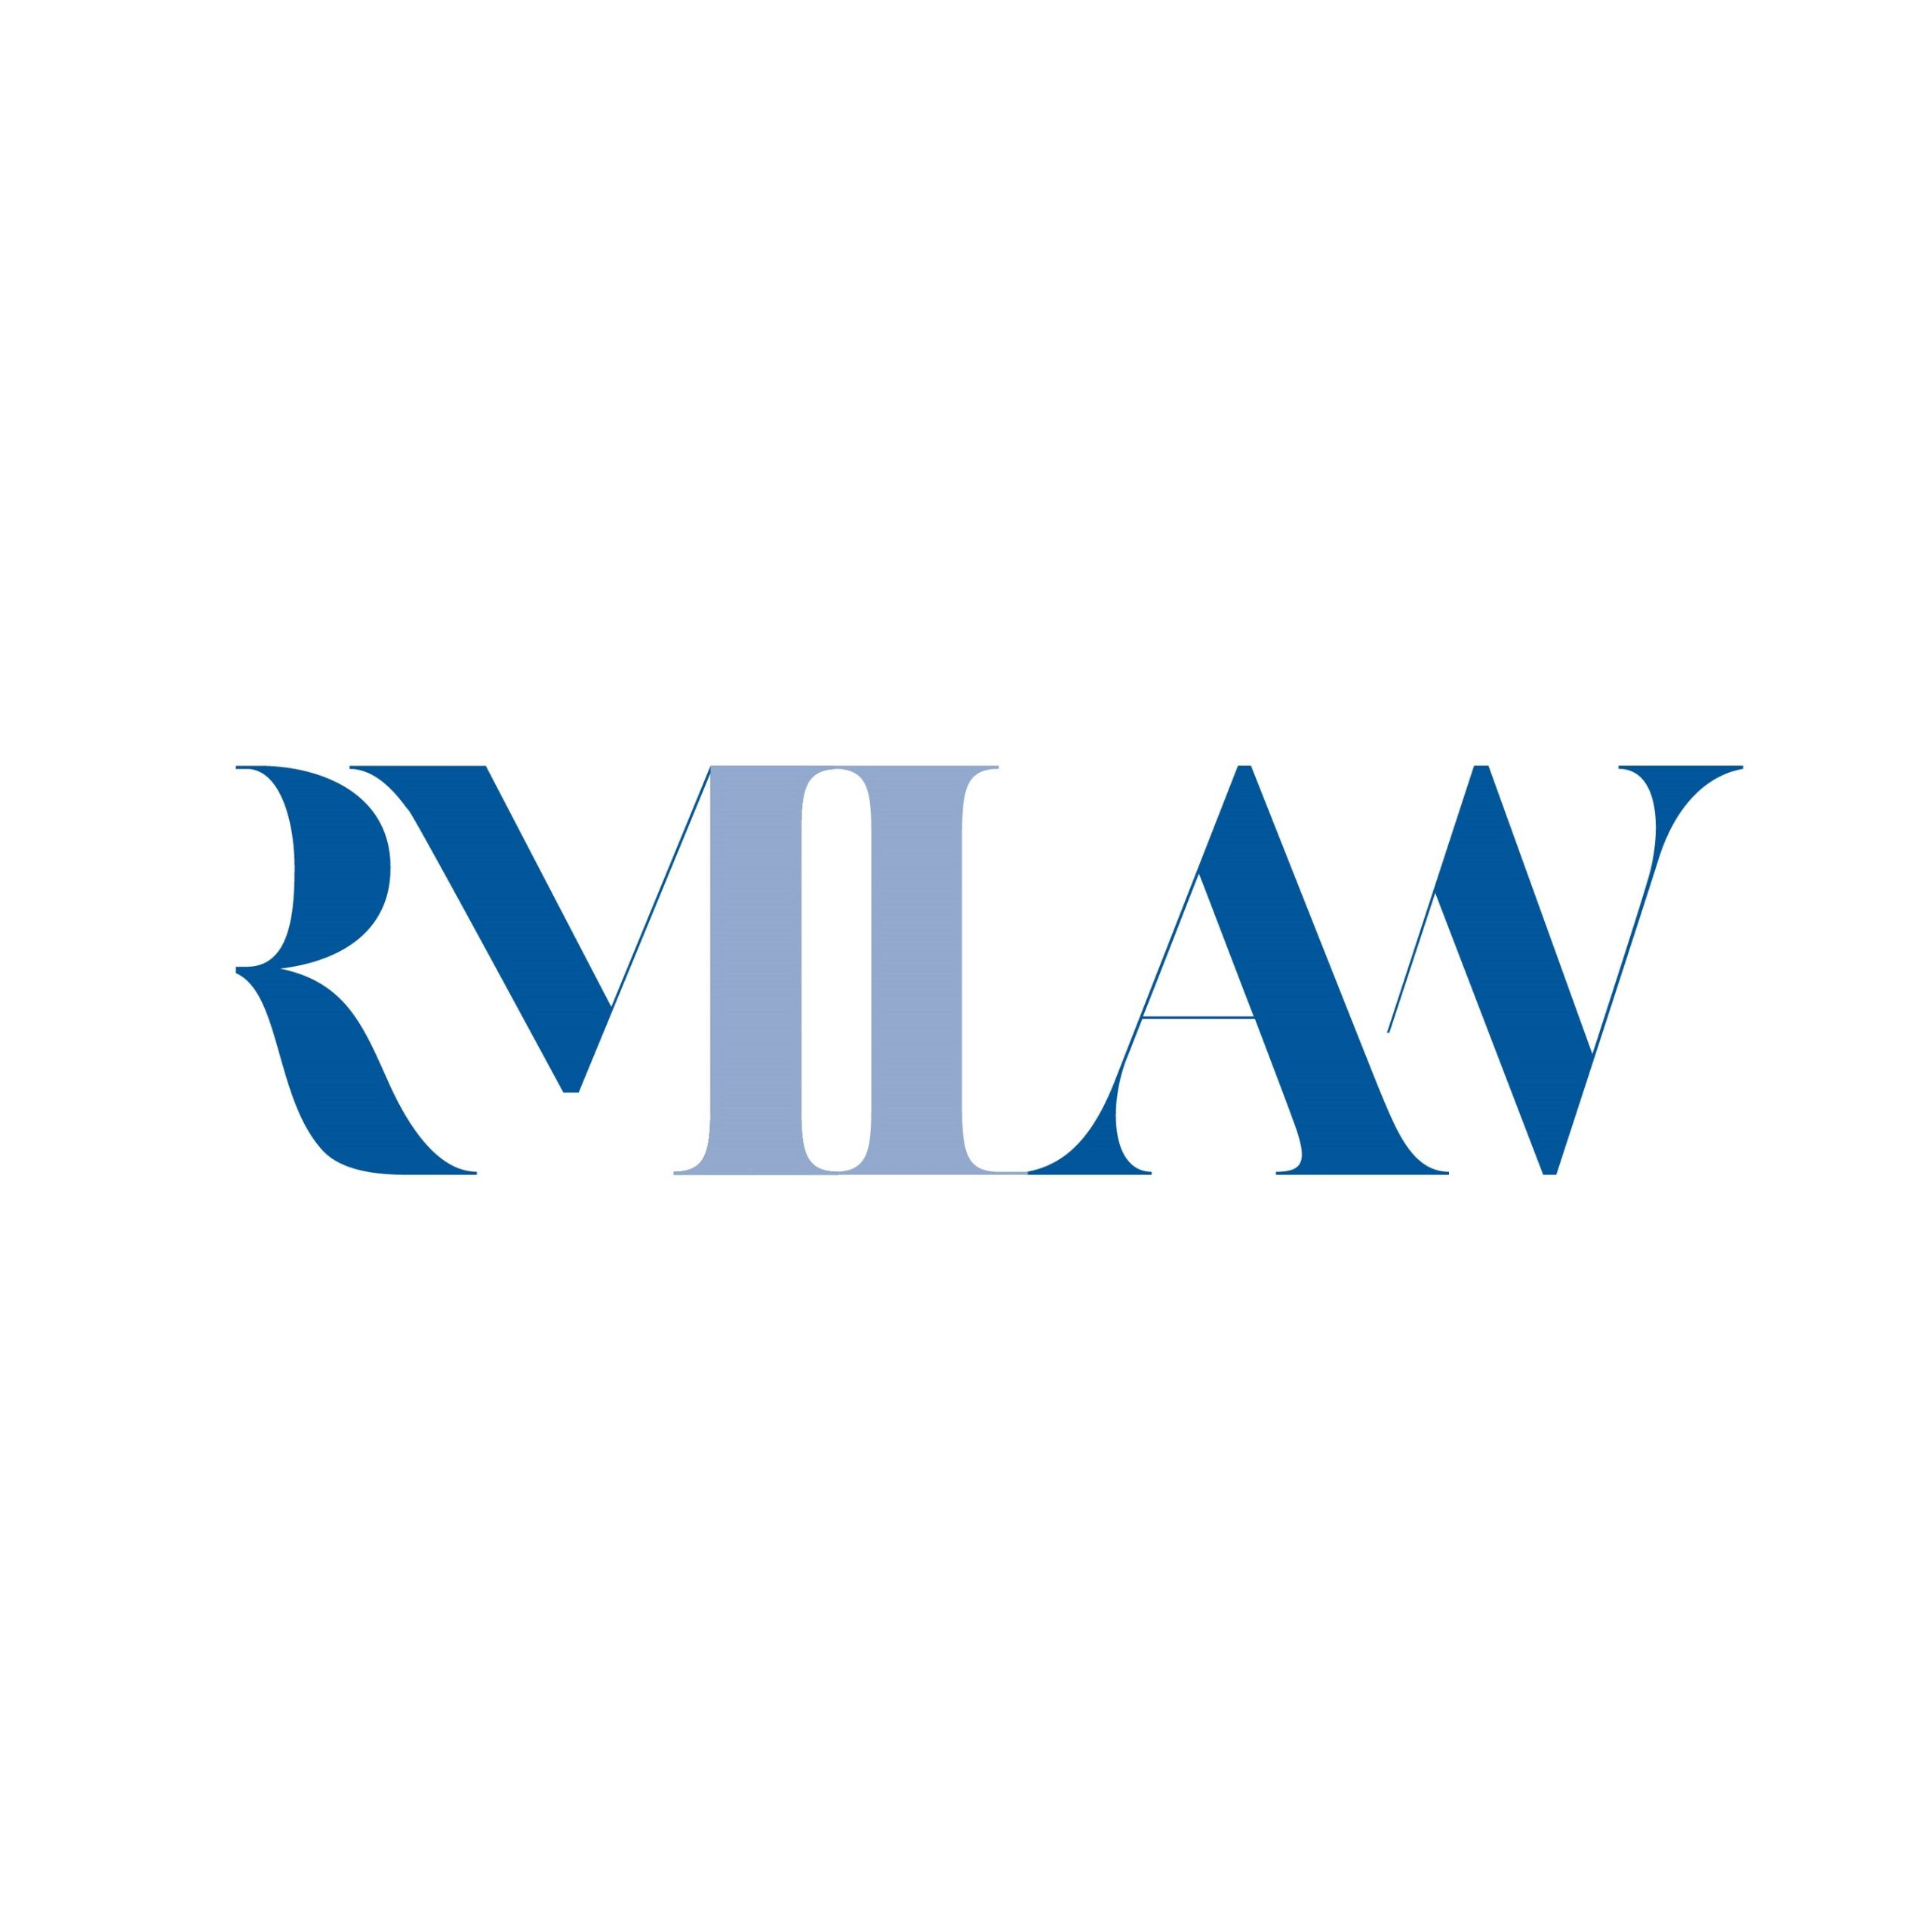 RM LAW Announces Class Action Lawsuit Against First American Financial Corporation